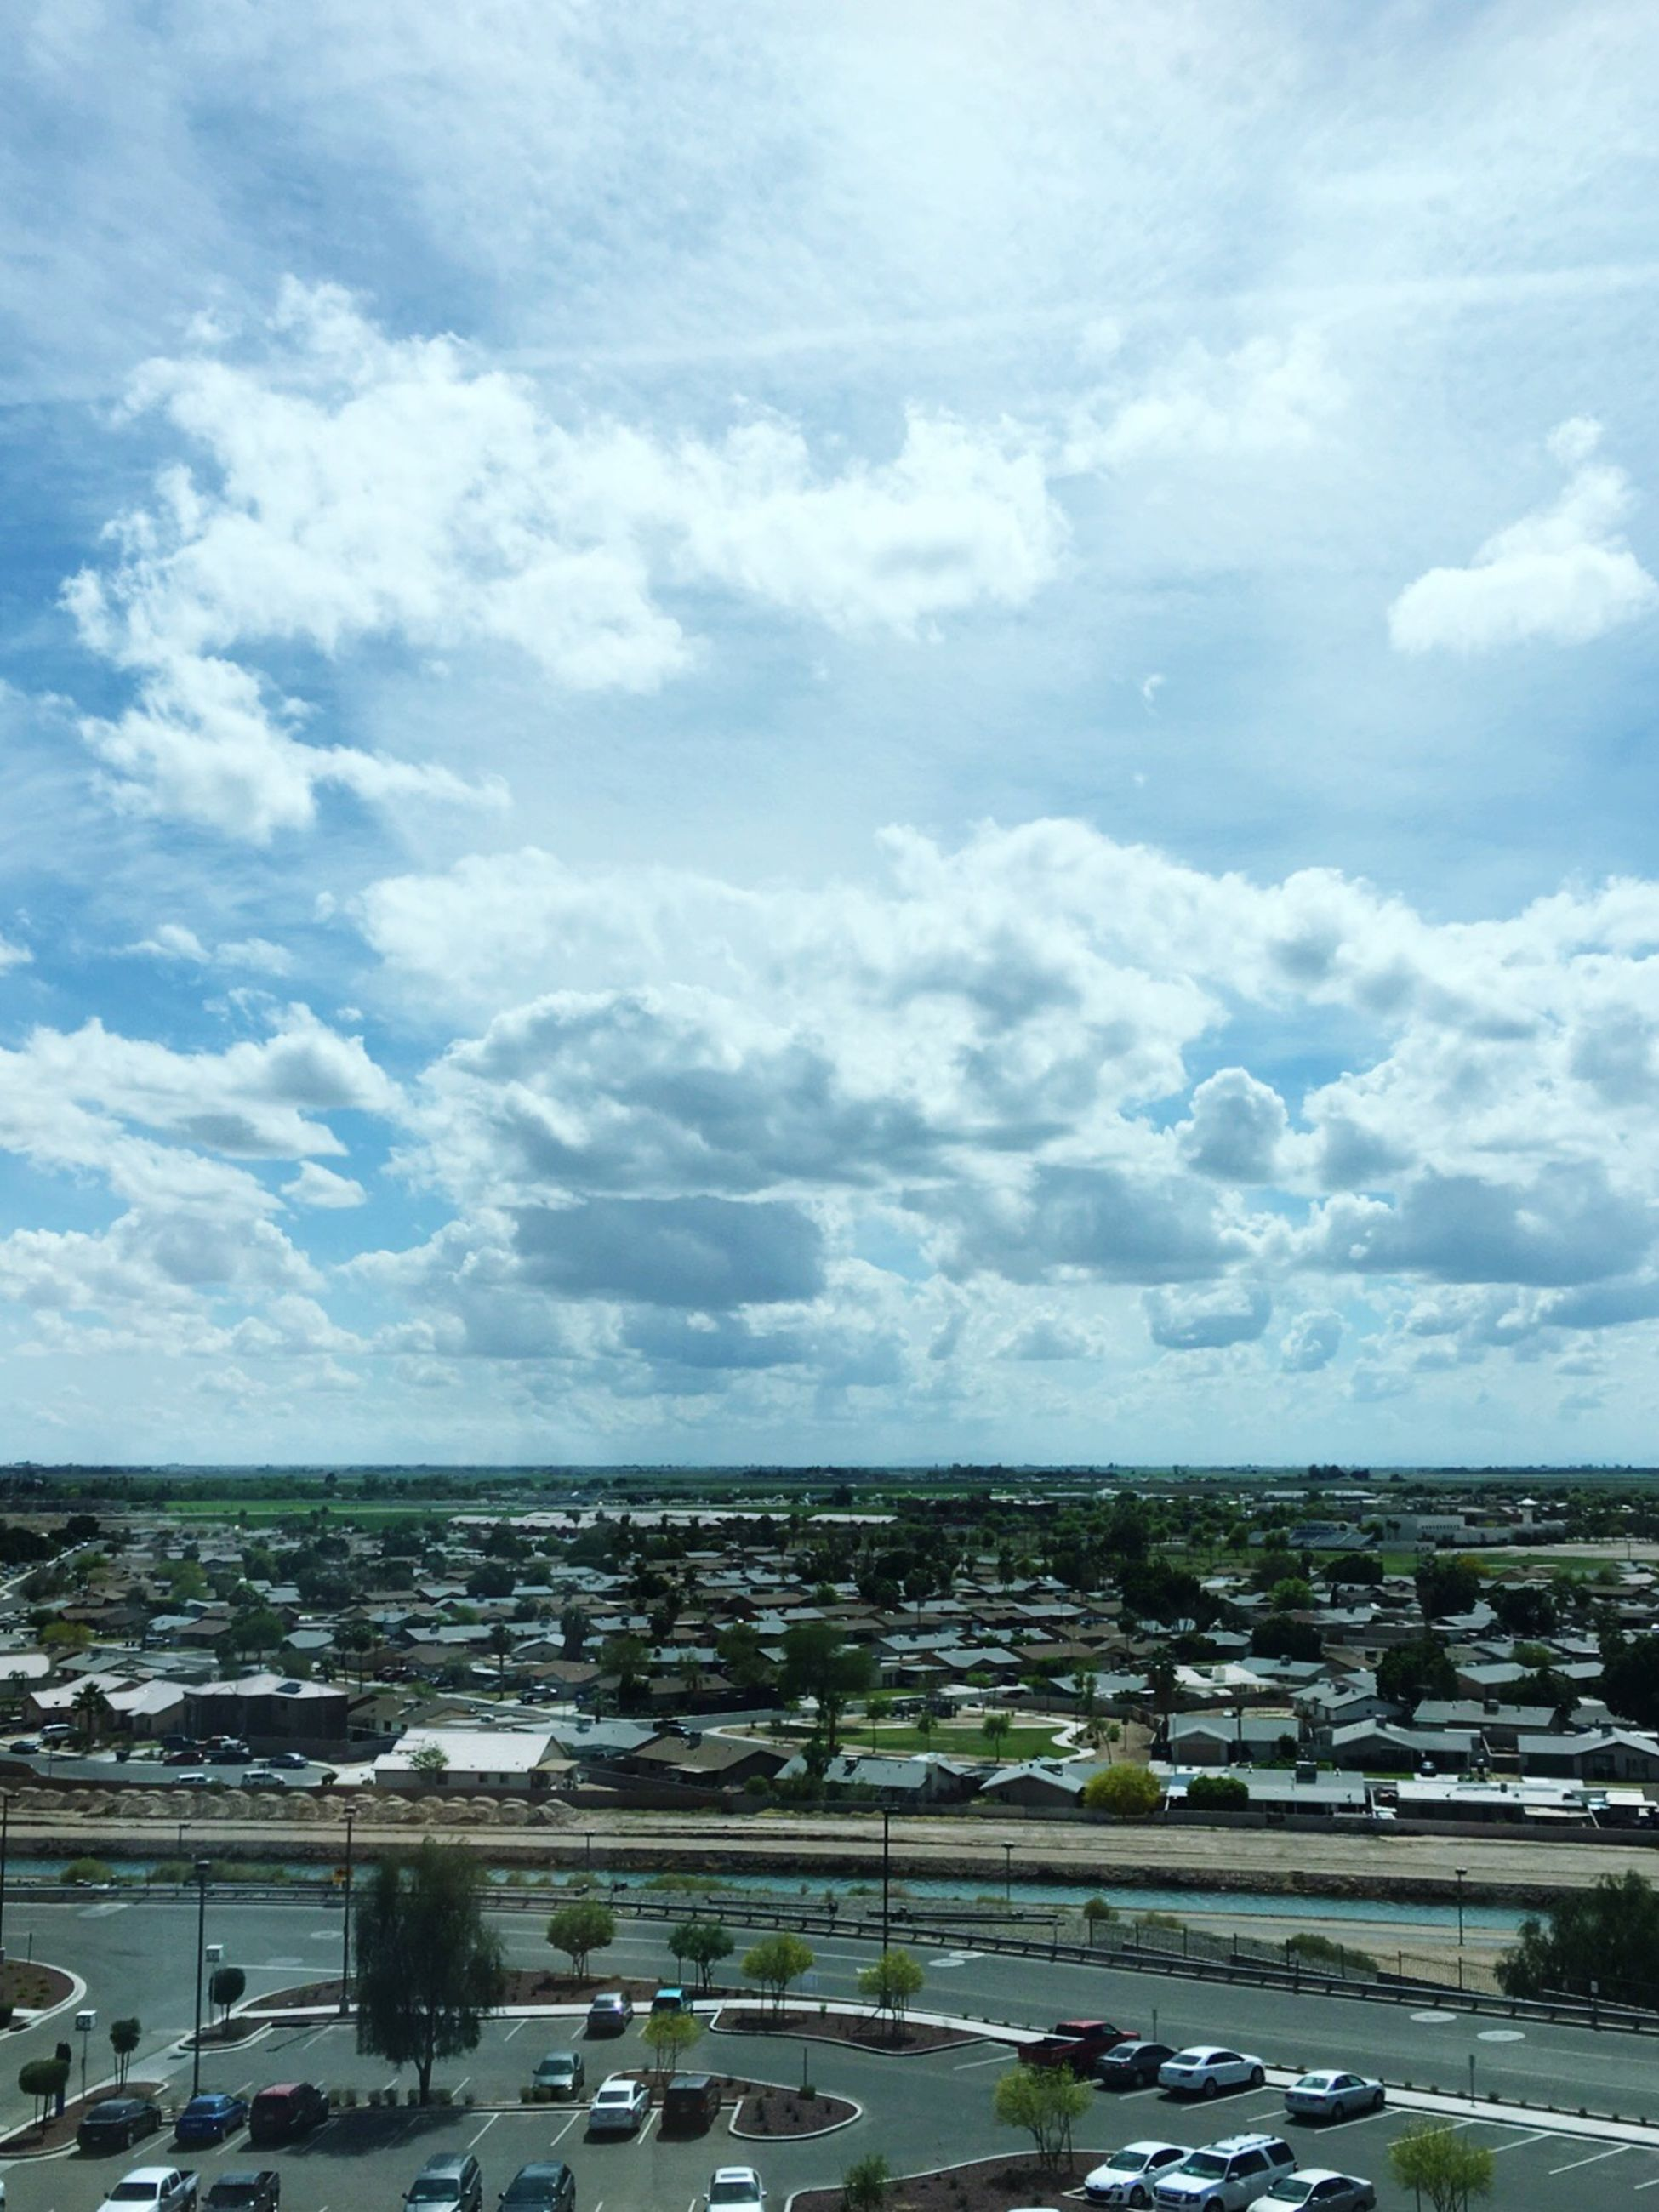 transportation, sky, mode of transport, travel destinations, sea, cloud - sky, vacations, tourism, cloud, aerial view, water, tranquility, day, tranquil scene, distant, summer, outdoors, majestic, scenics, nature, cloudscape, ocean, no people, city life, cloudy